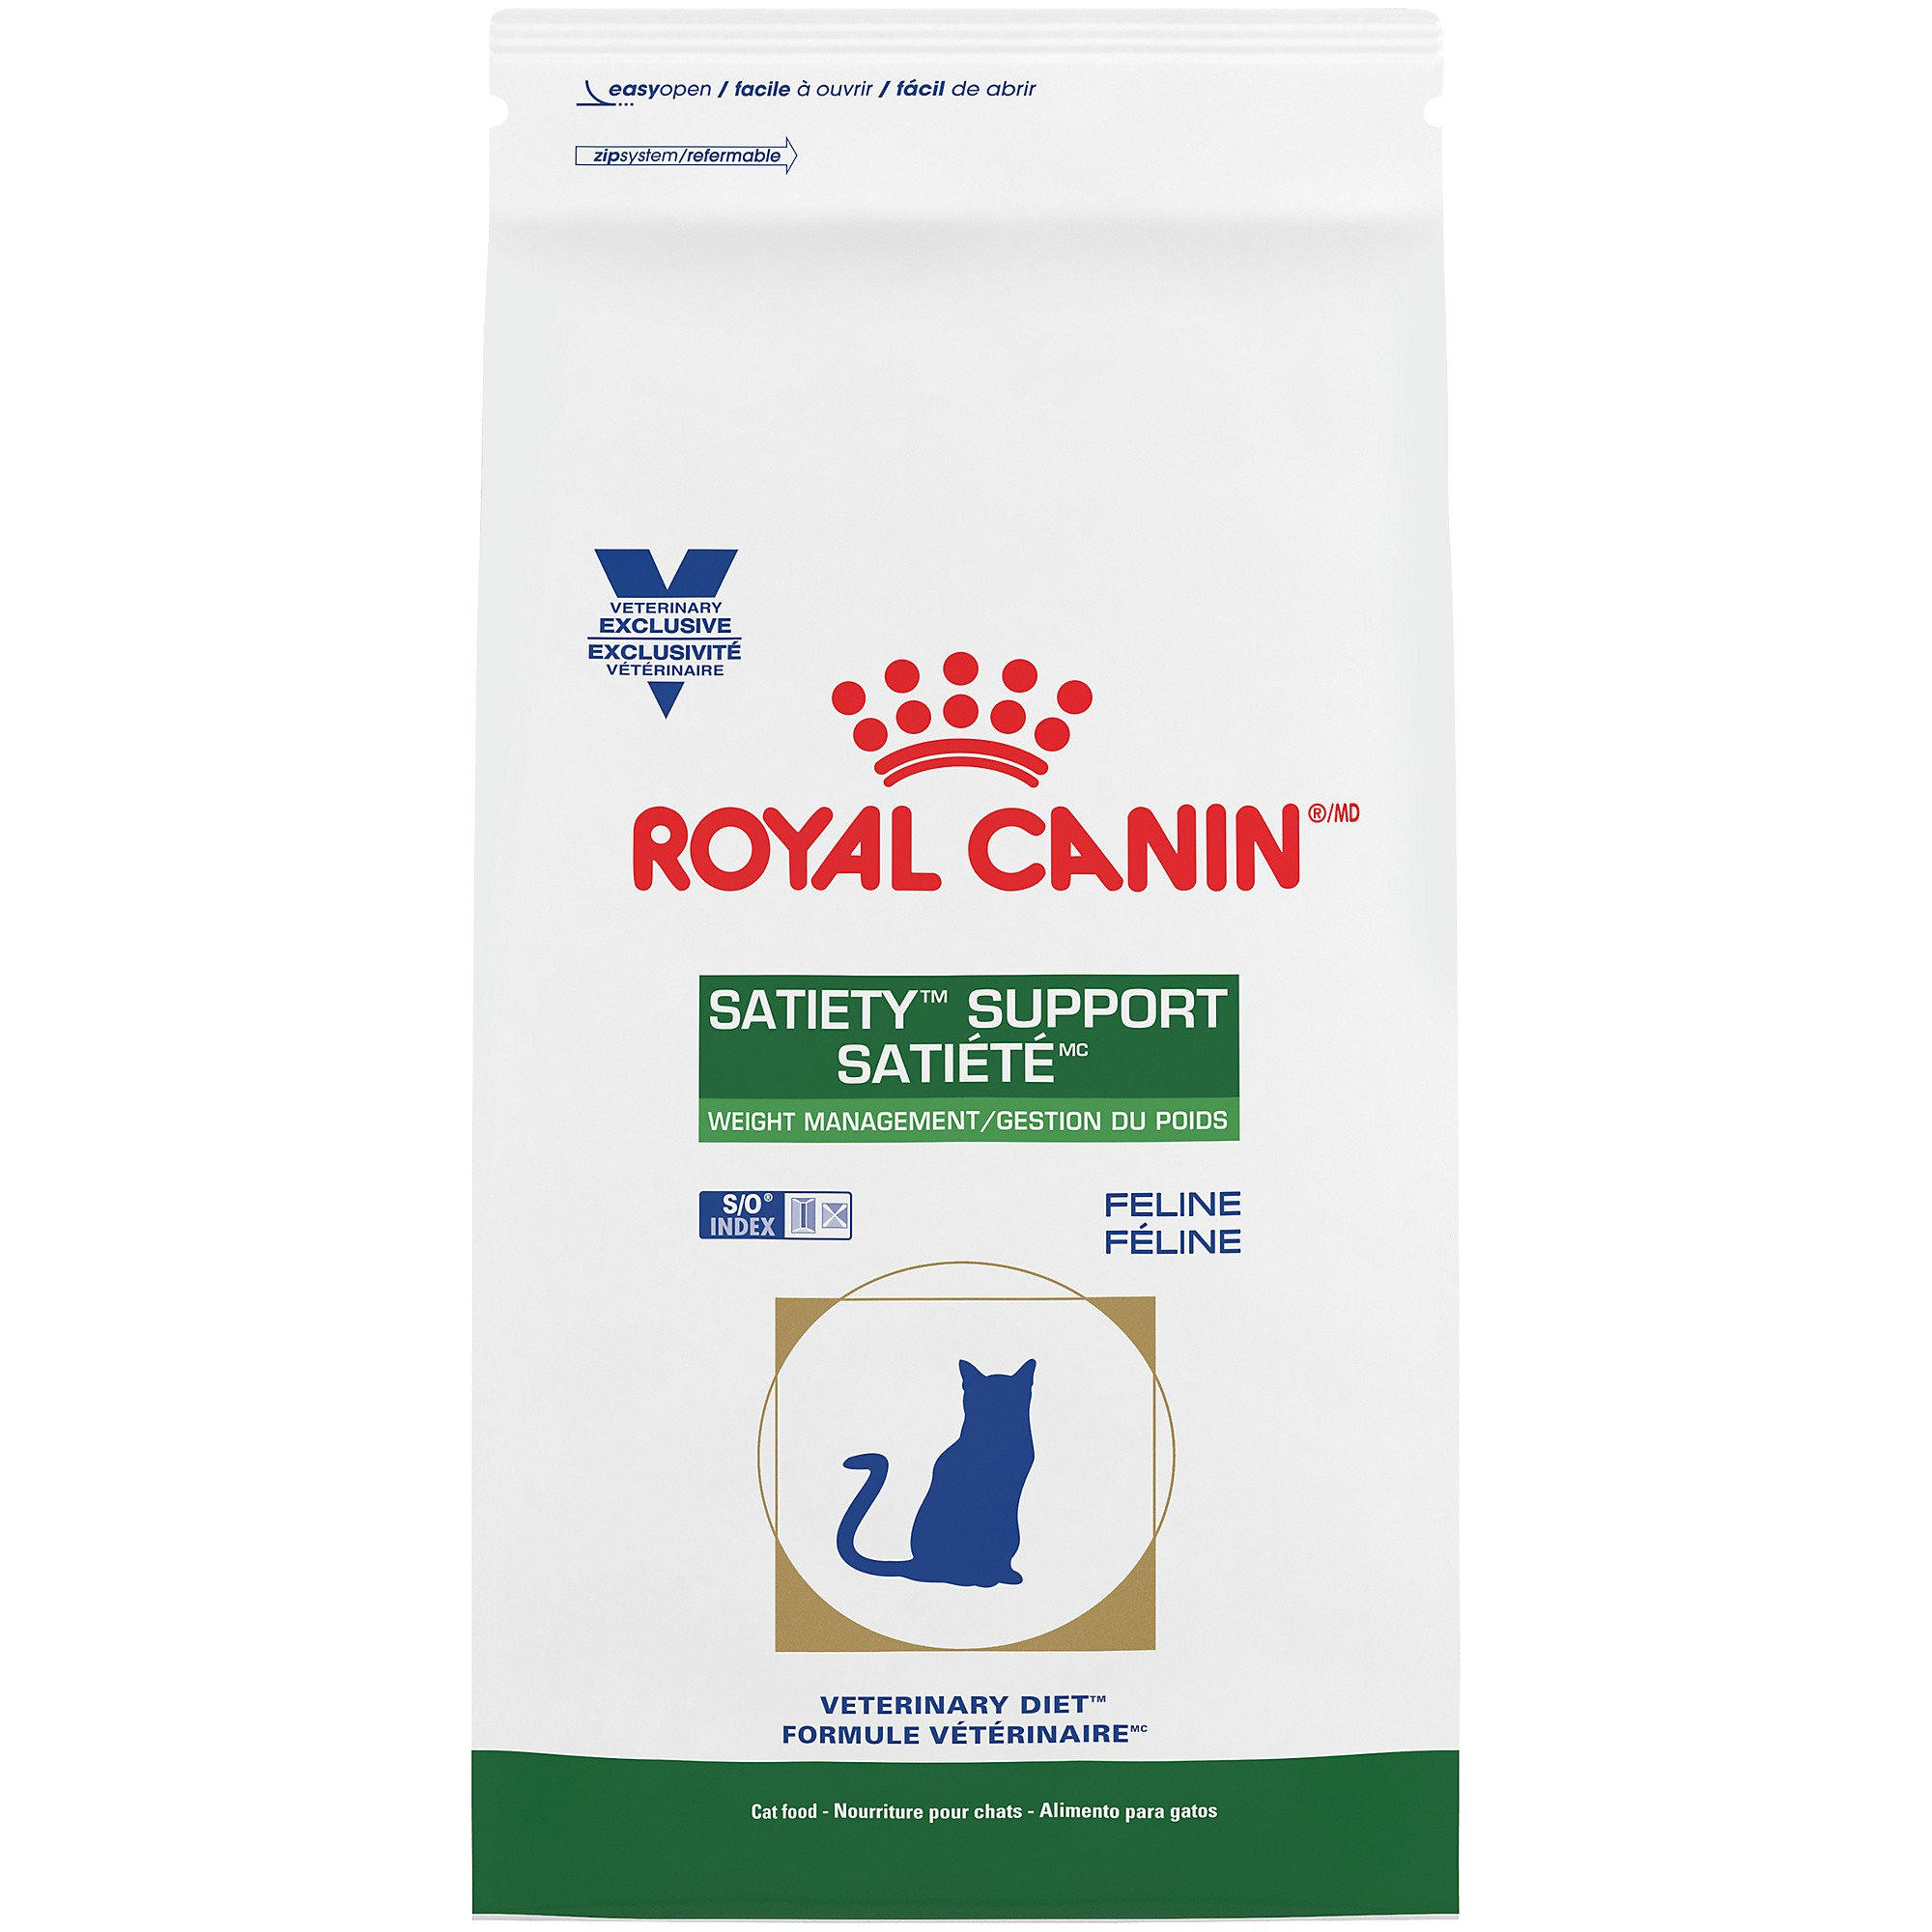 Royal Canin Satiety Support Cat Food